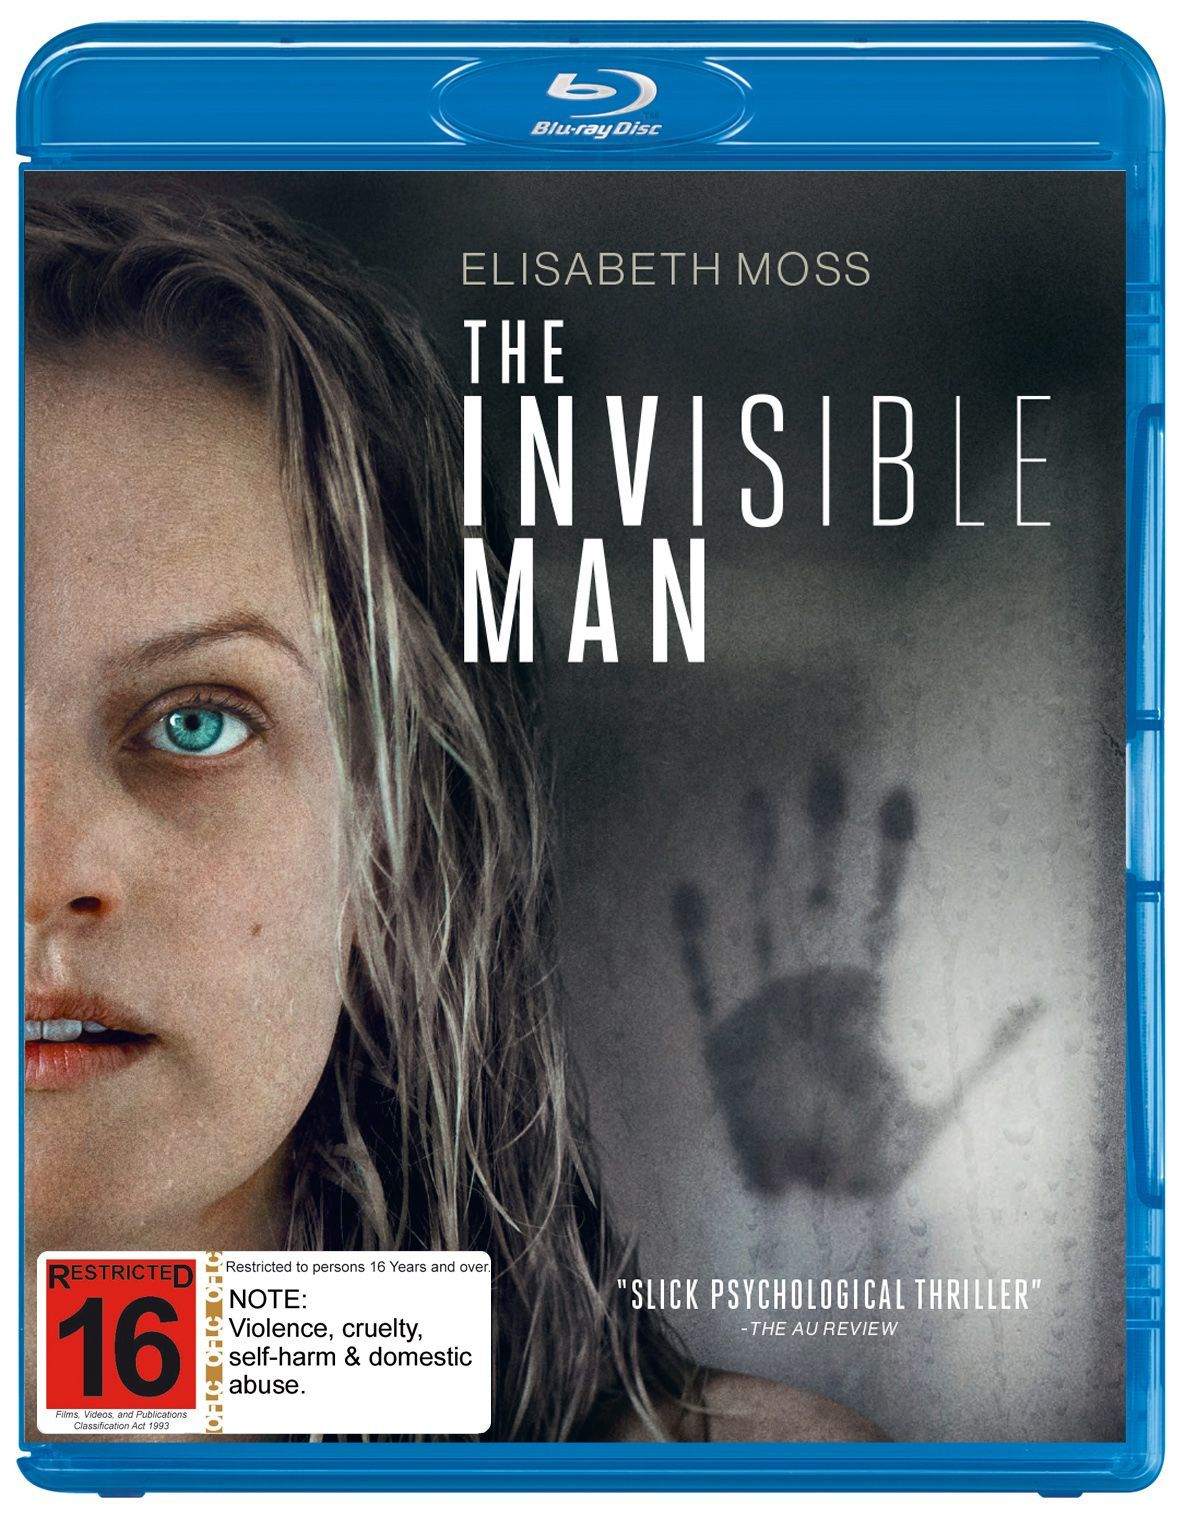 The Invisible Man on Blu-ray image